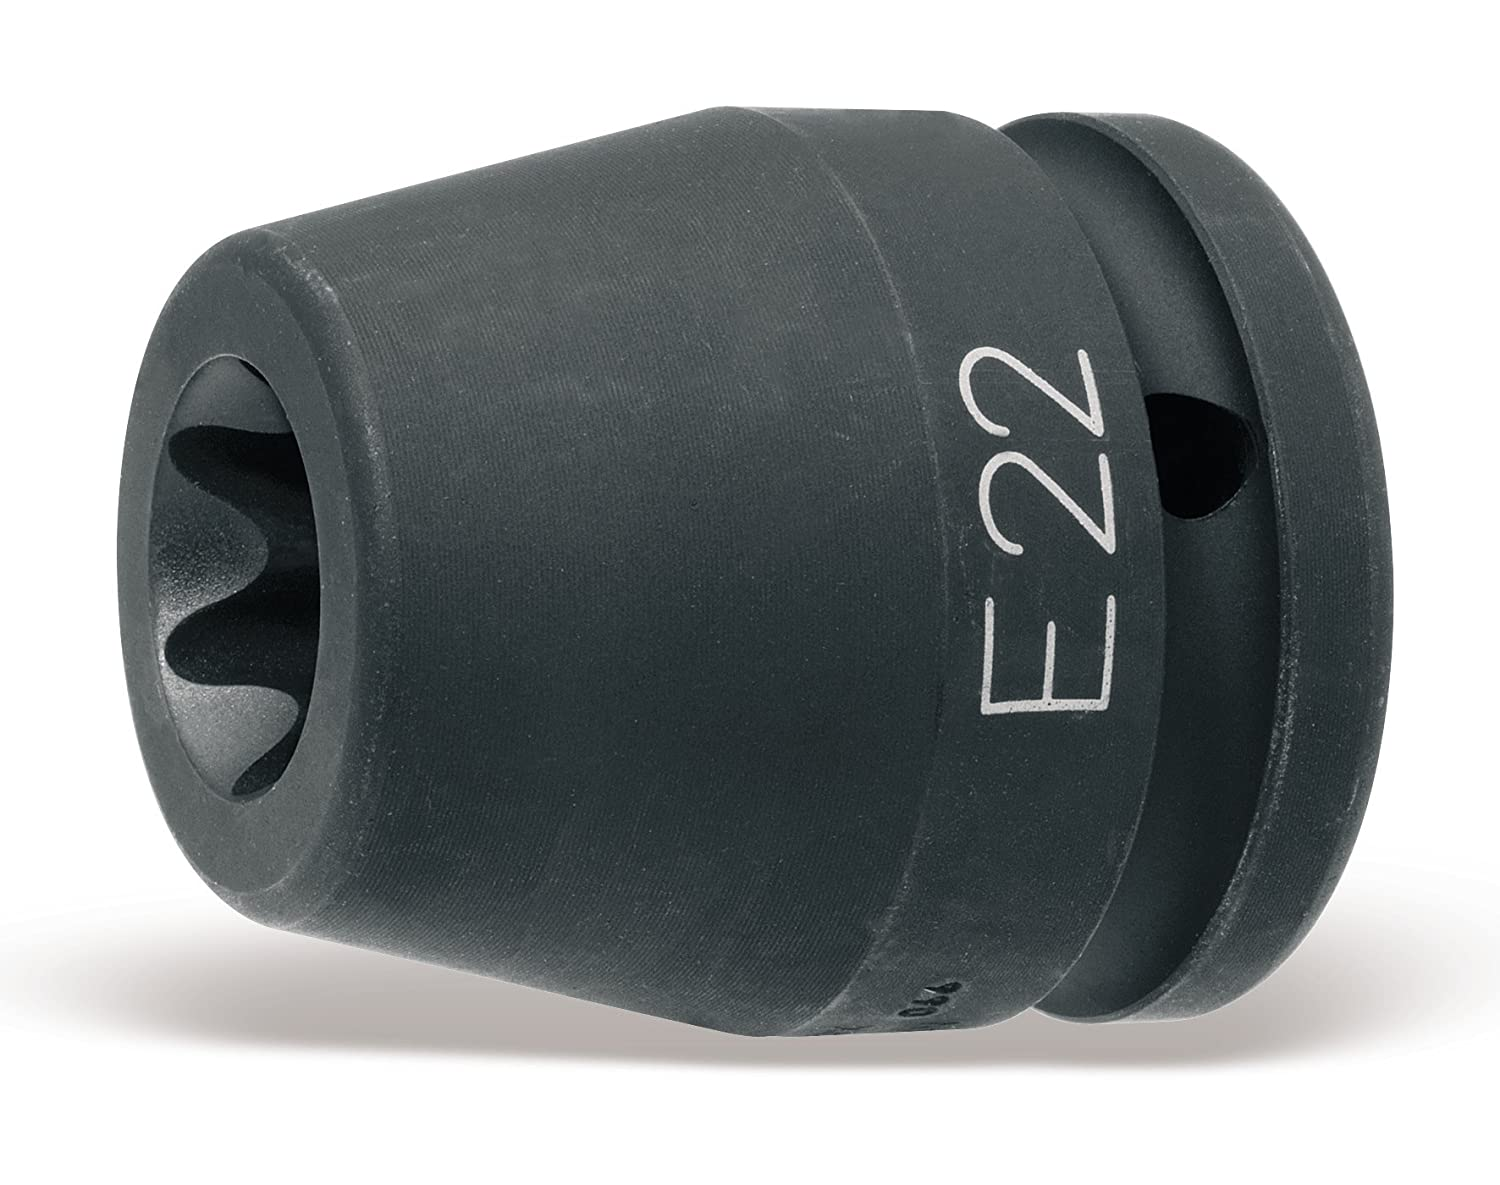 Beta 728FTX E20 3/4' Drive Impact Socket, for Torx Head Screws BETA UTENSILI S.P.A. BT007280420